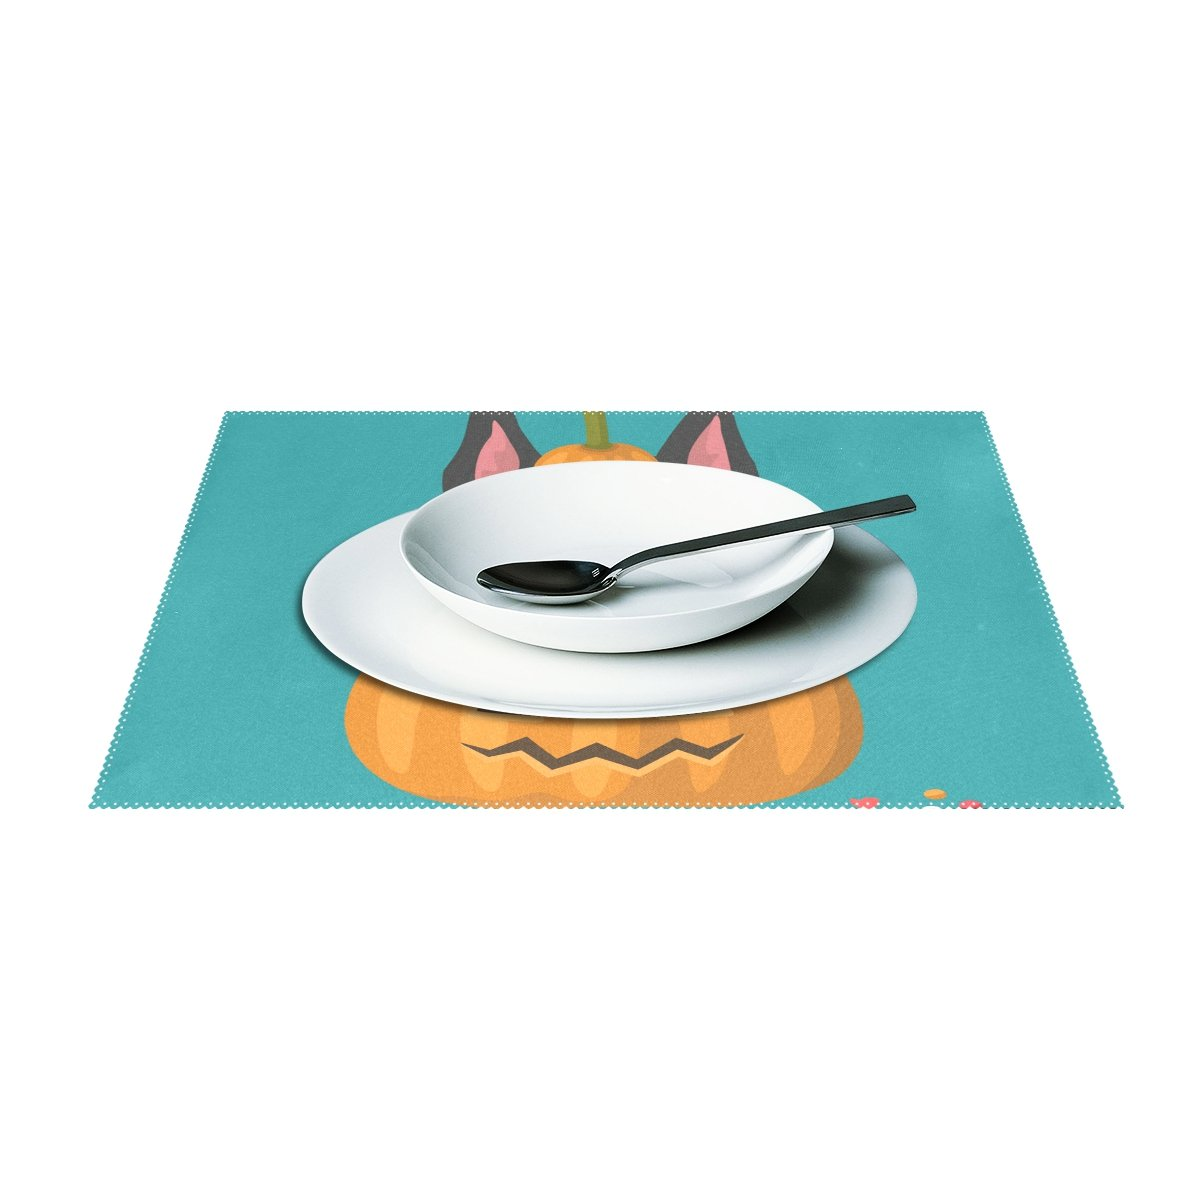 Naanle Halloween Placemats Ghost Owl Pumpkin Heat-Resistant Washable Table Place Mats for Kitchen Dining Table Decoration